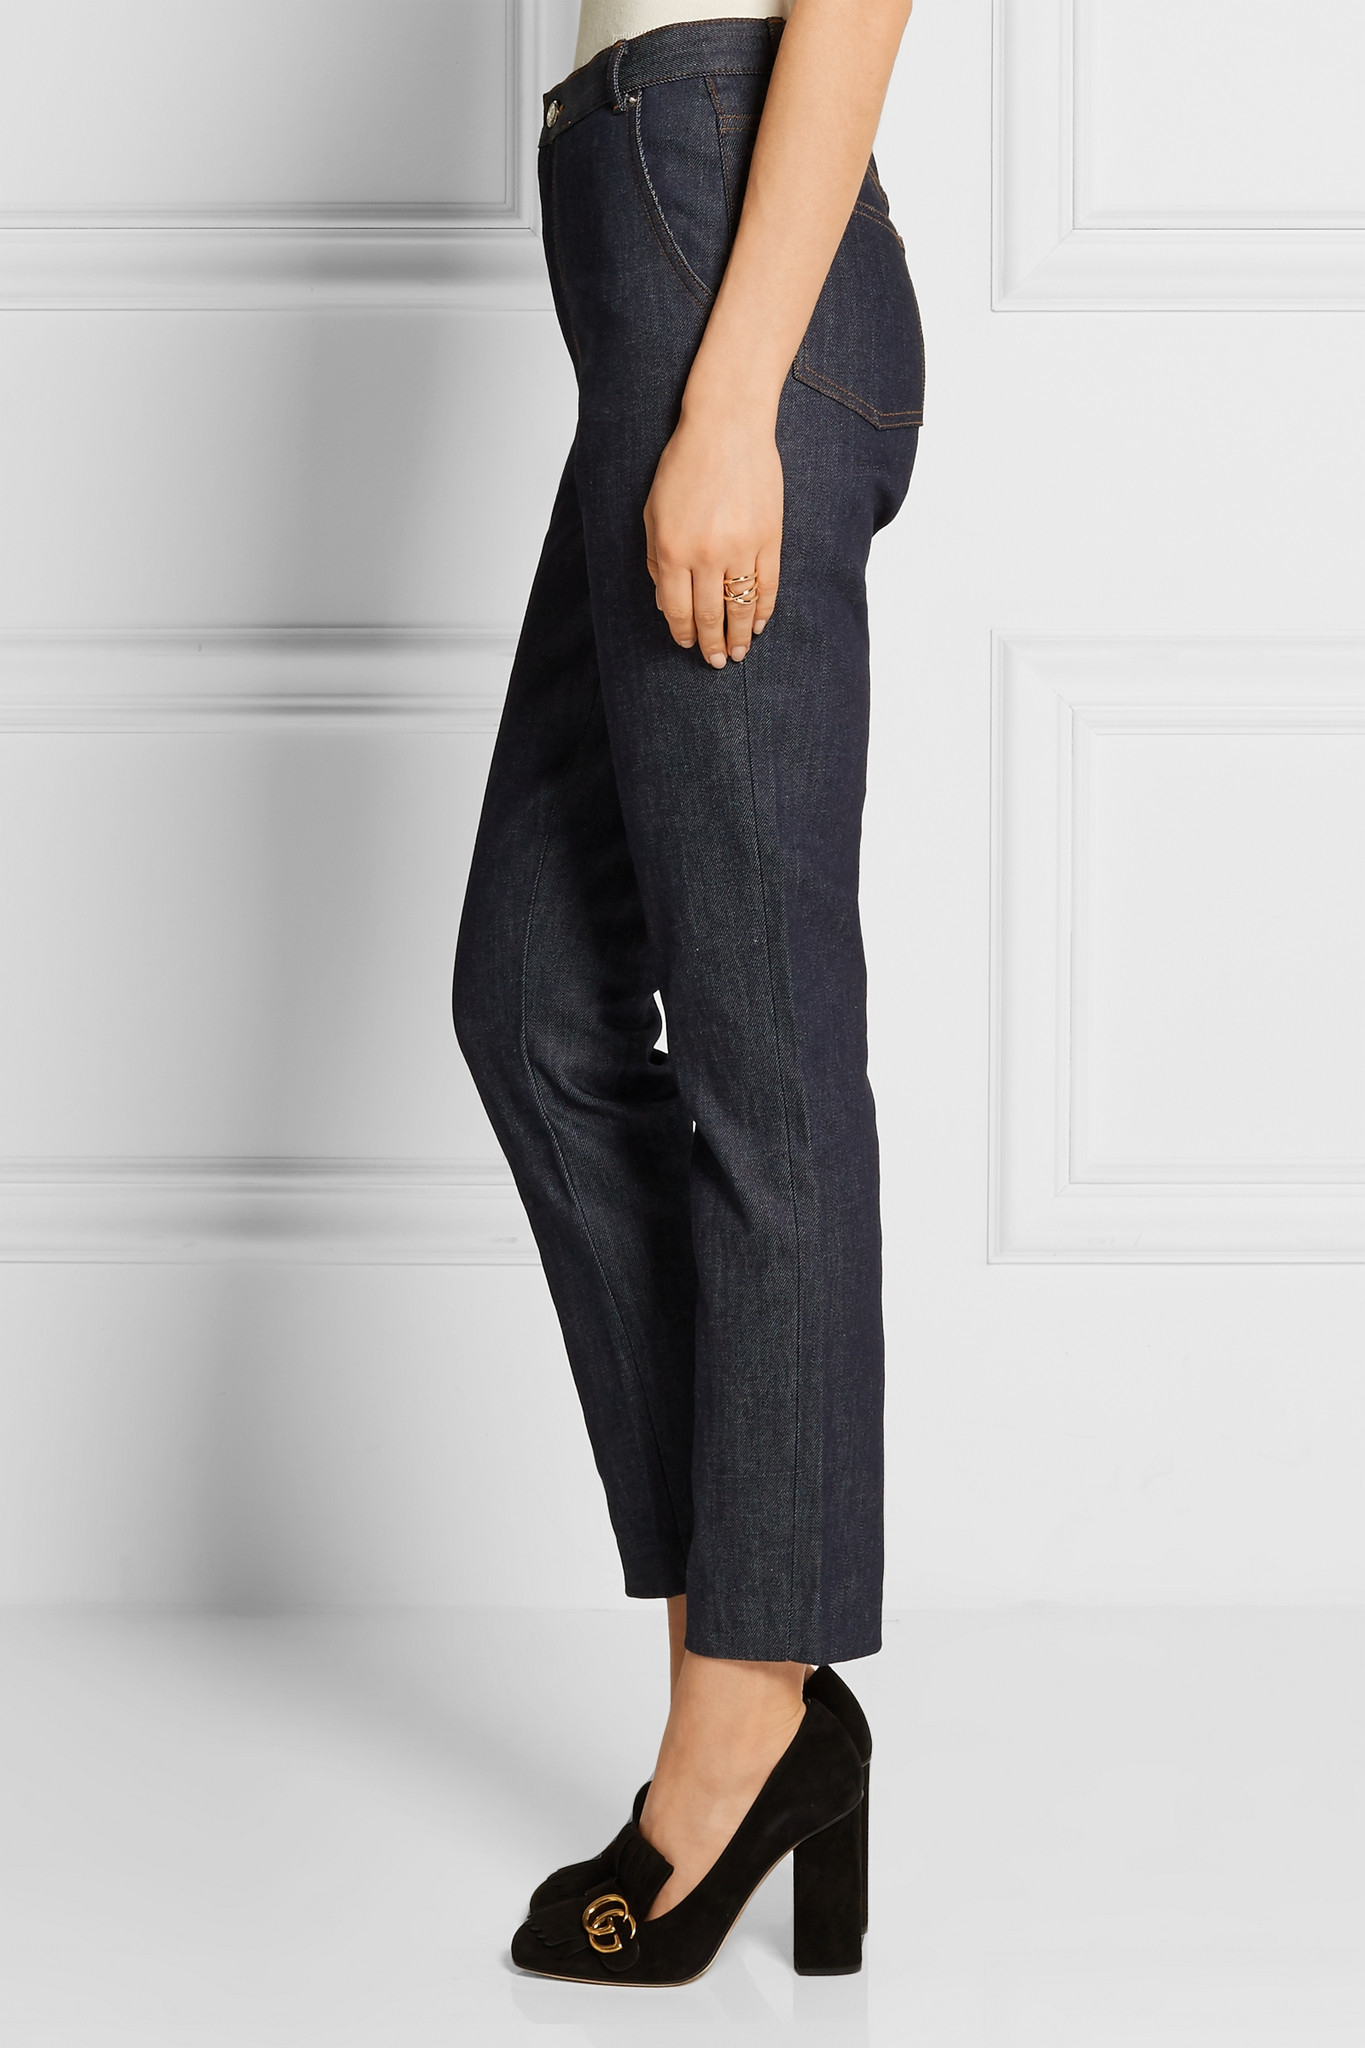 Vanessa Seward Denim Victoire High-rise Slim-leg Jeans in Dark Denim (Blue)